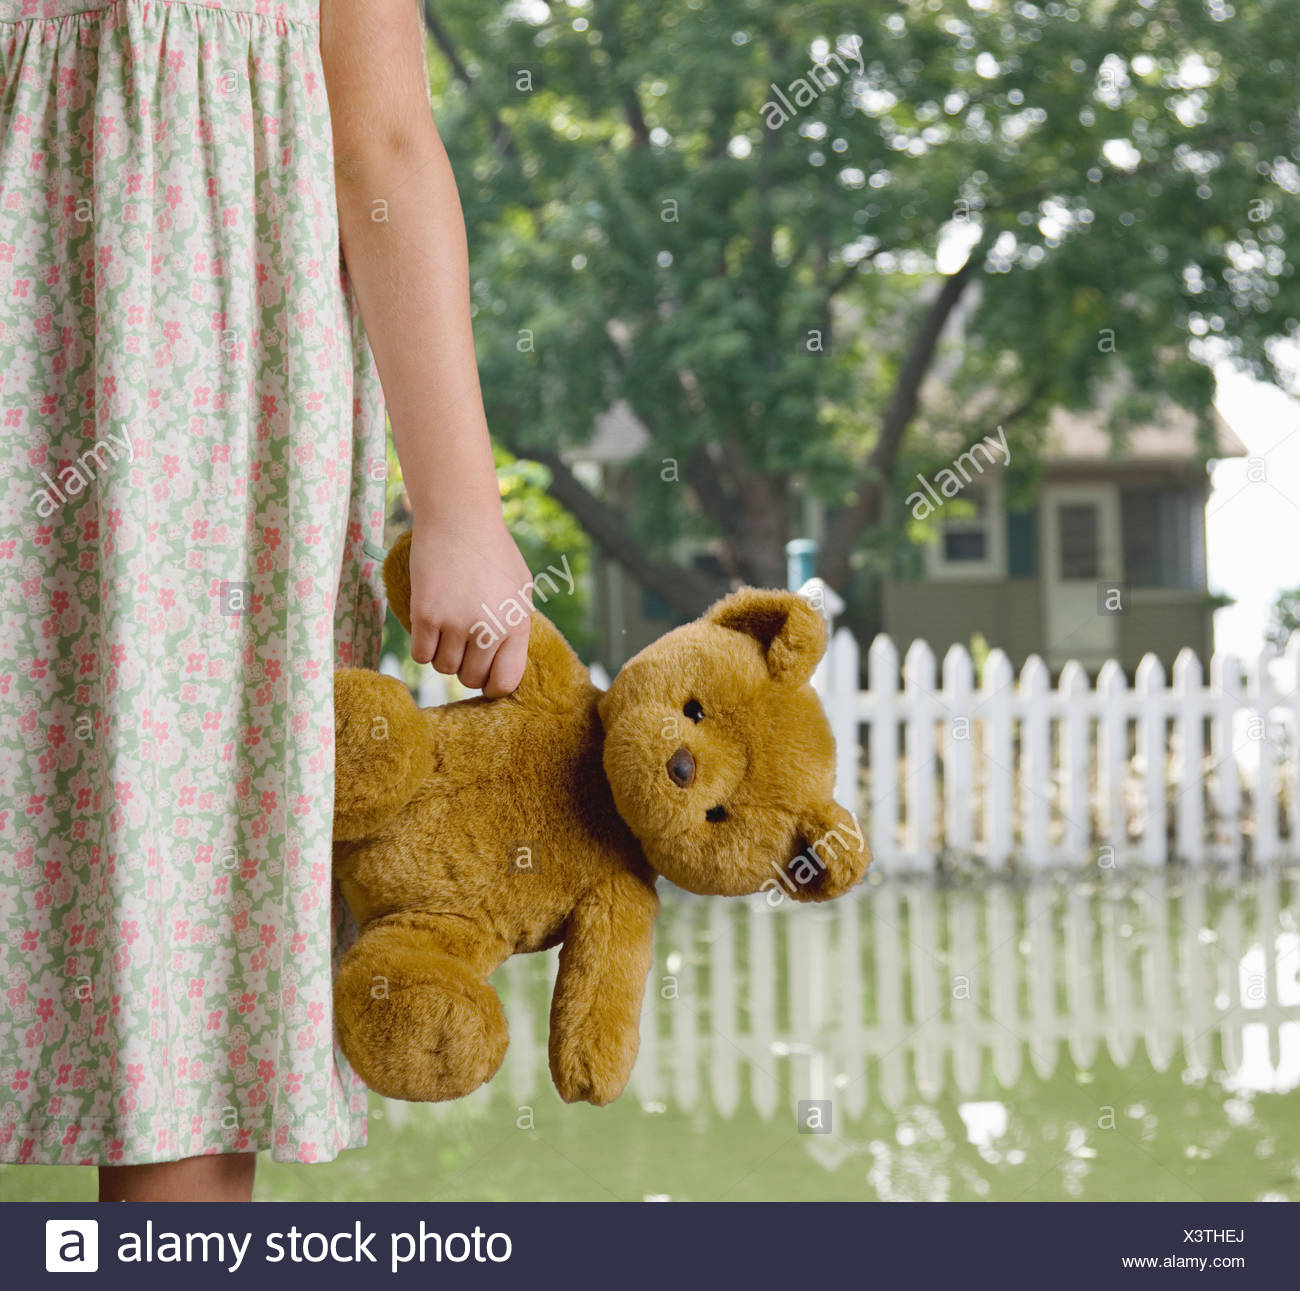 USA, Illinois, Metamora, Girl (8-9) holding teddy in flooded yard - Stock Image